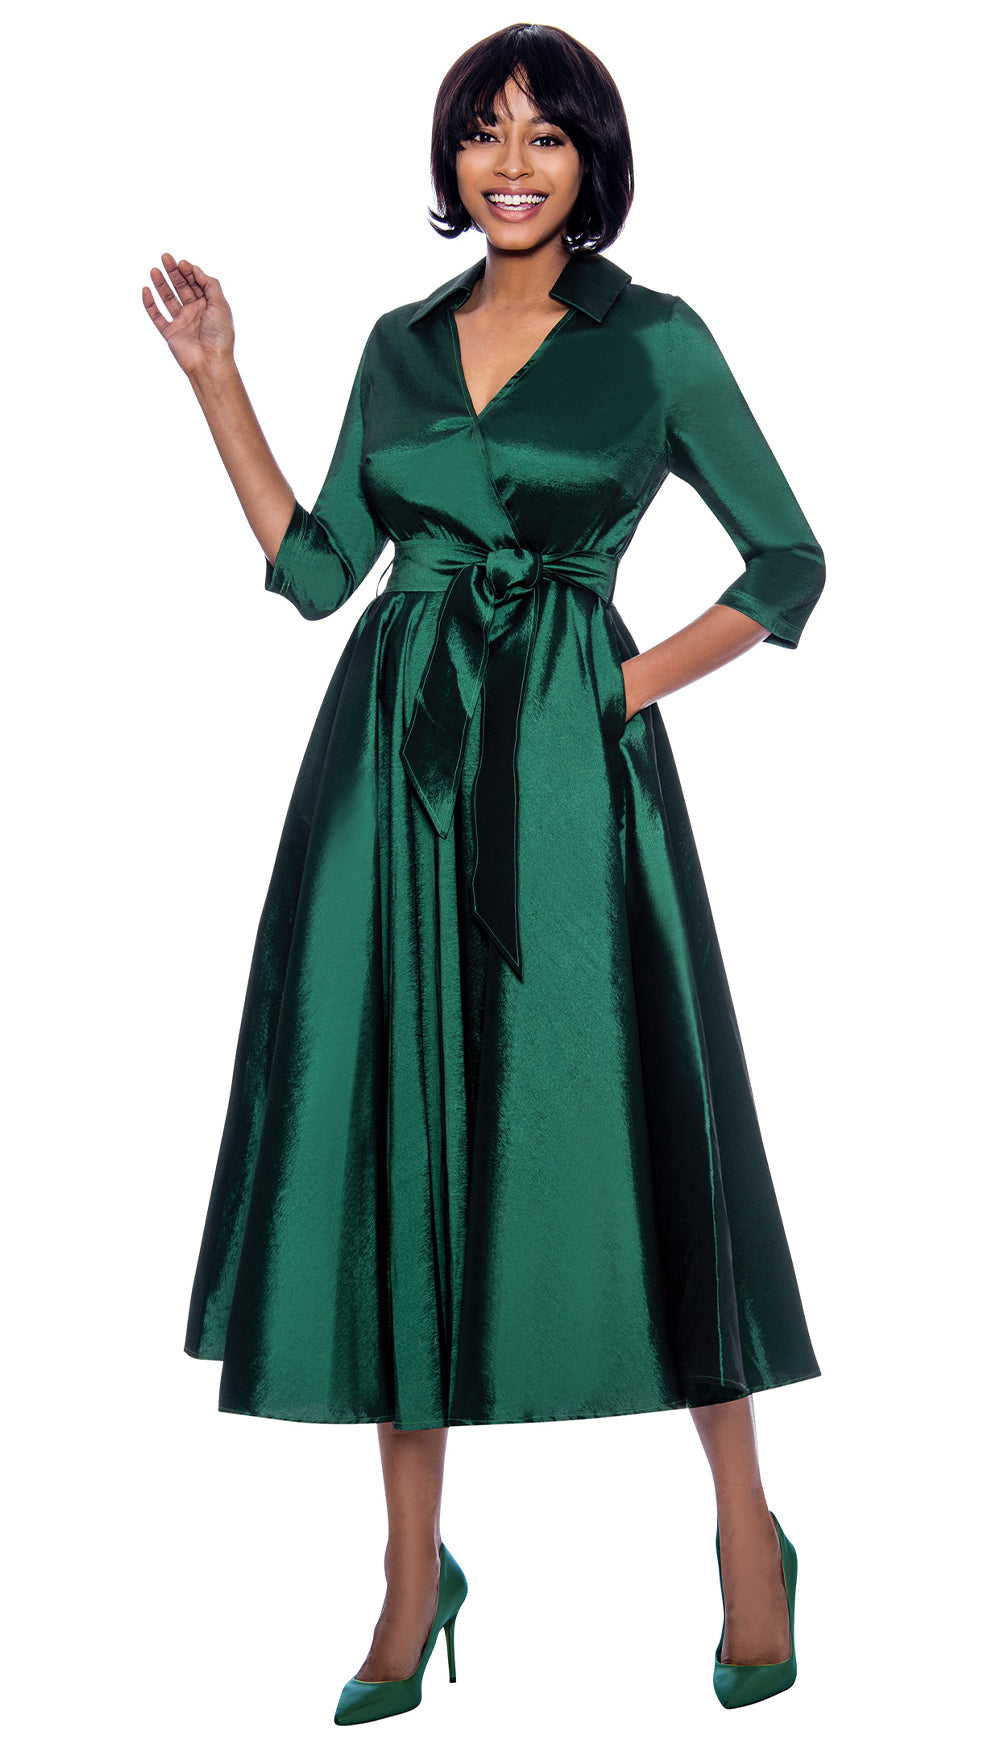 Terramina Dress 7869-Green - Church Suits For Less